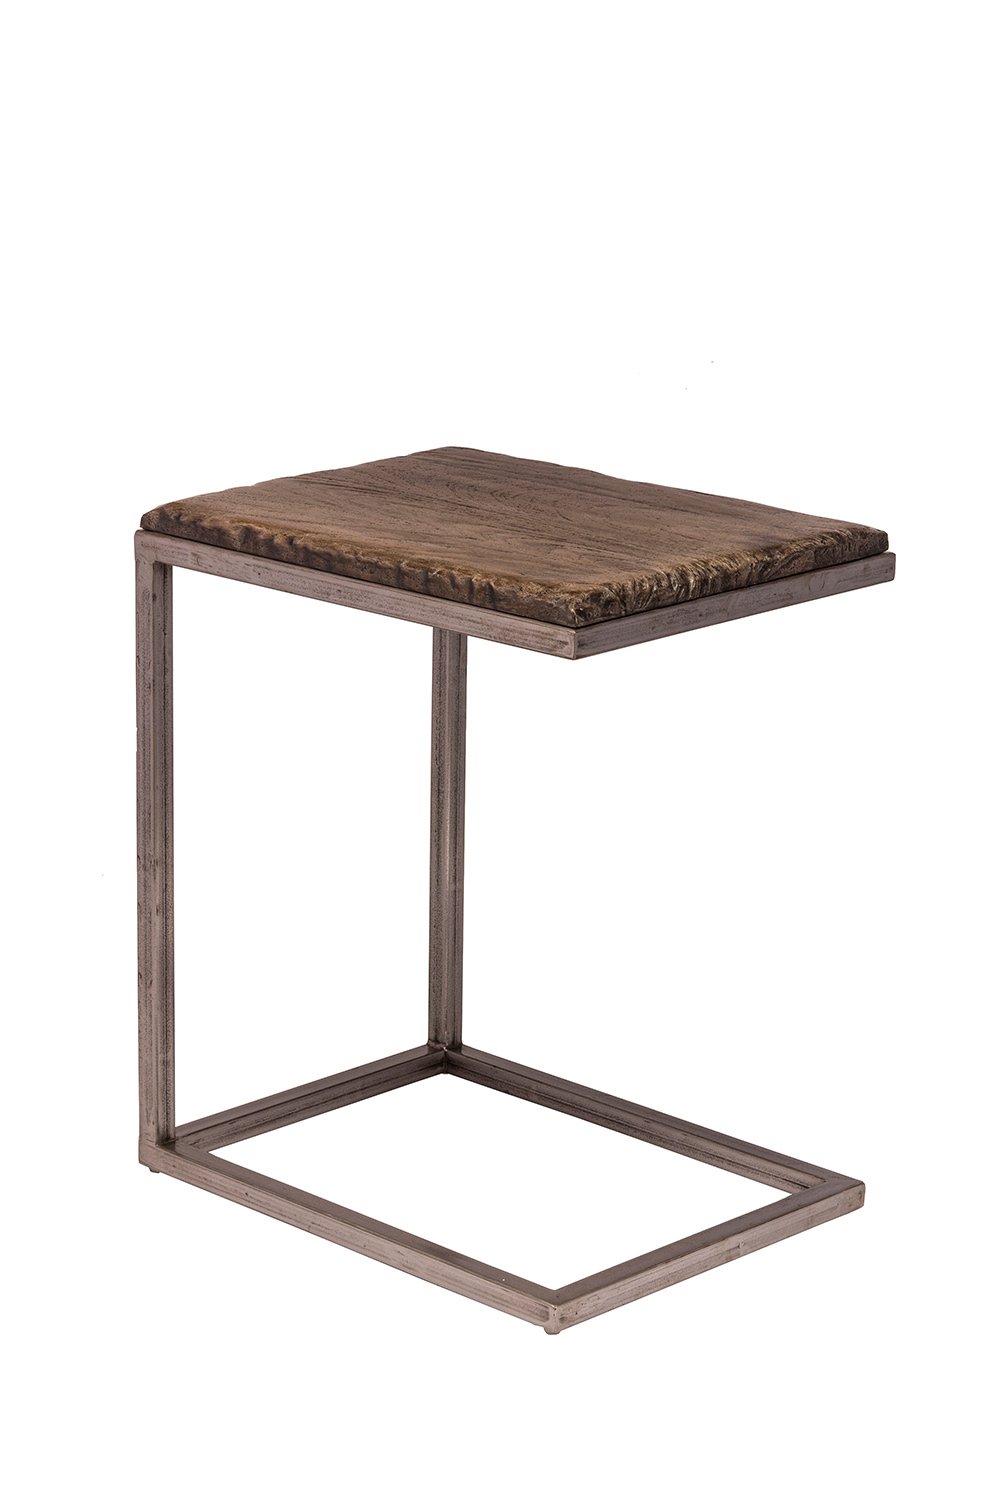 hillsdale lorient c shape accent table washed charcoal gray aged steel metal hd 5731 902 at. Black Bedroom Furniture Sets. Home Design Ideas